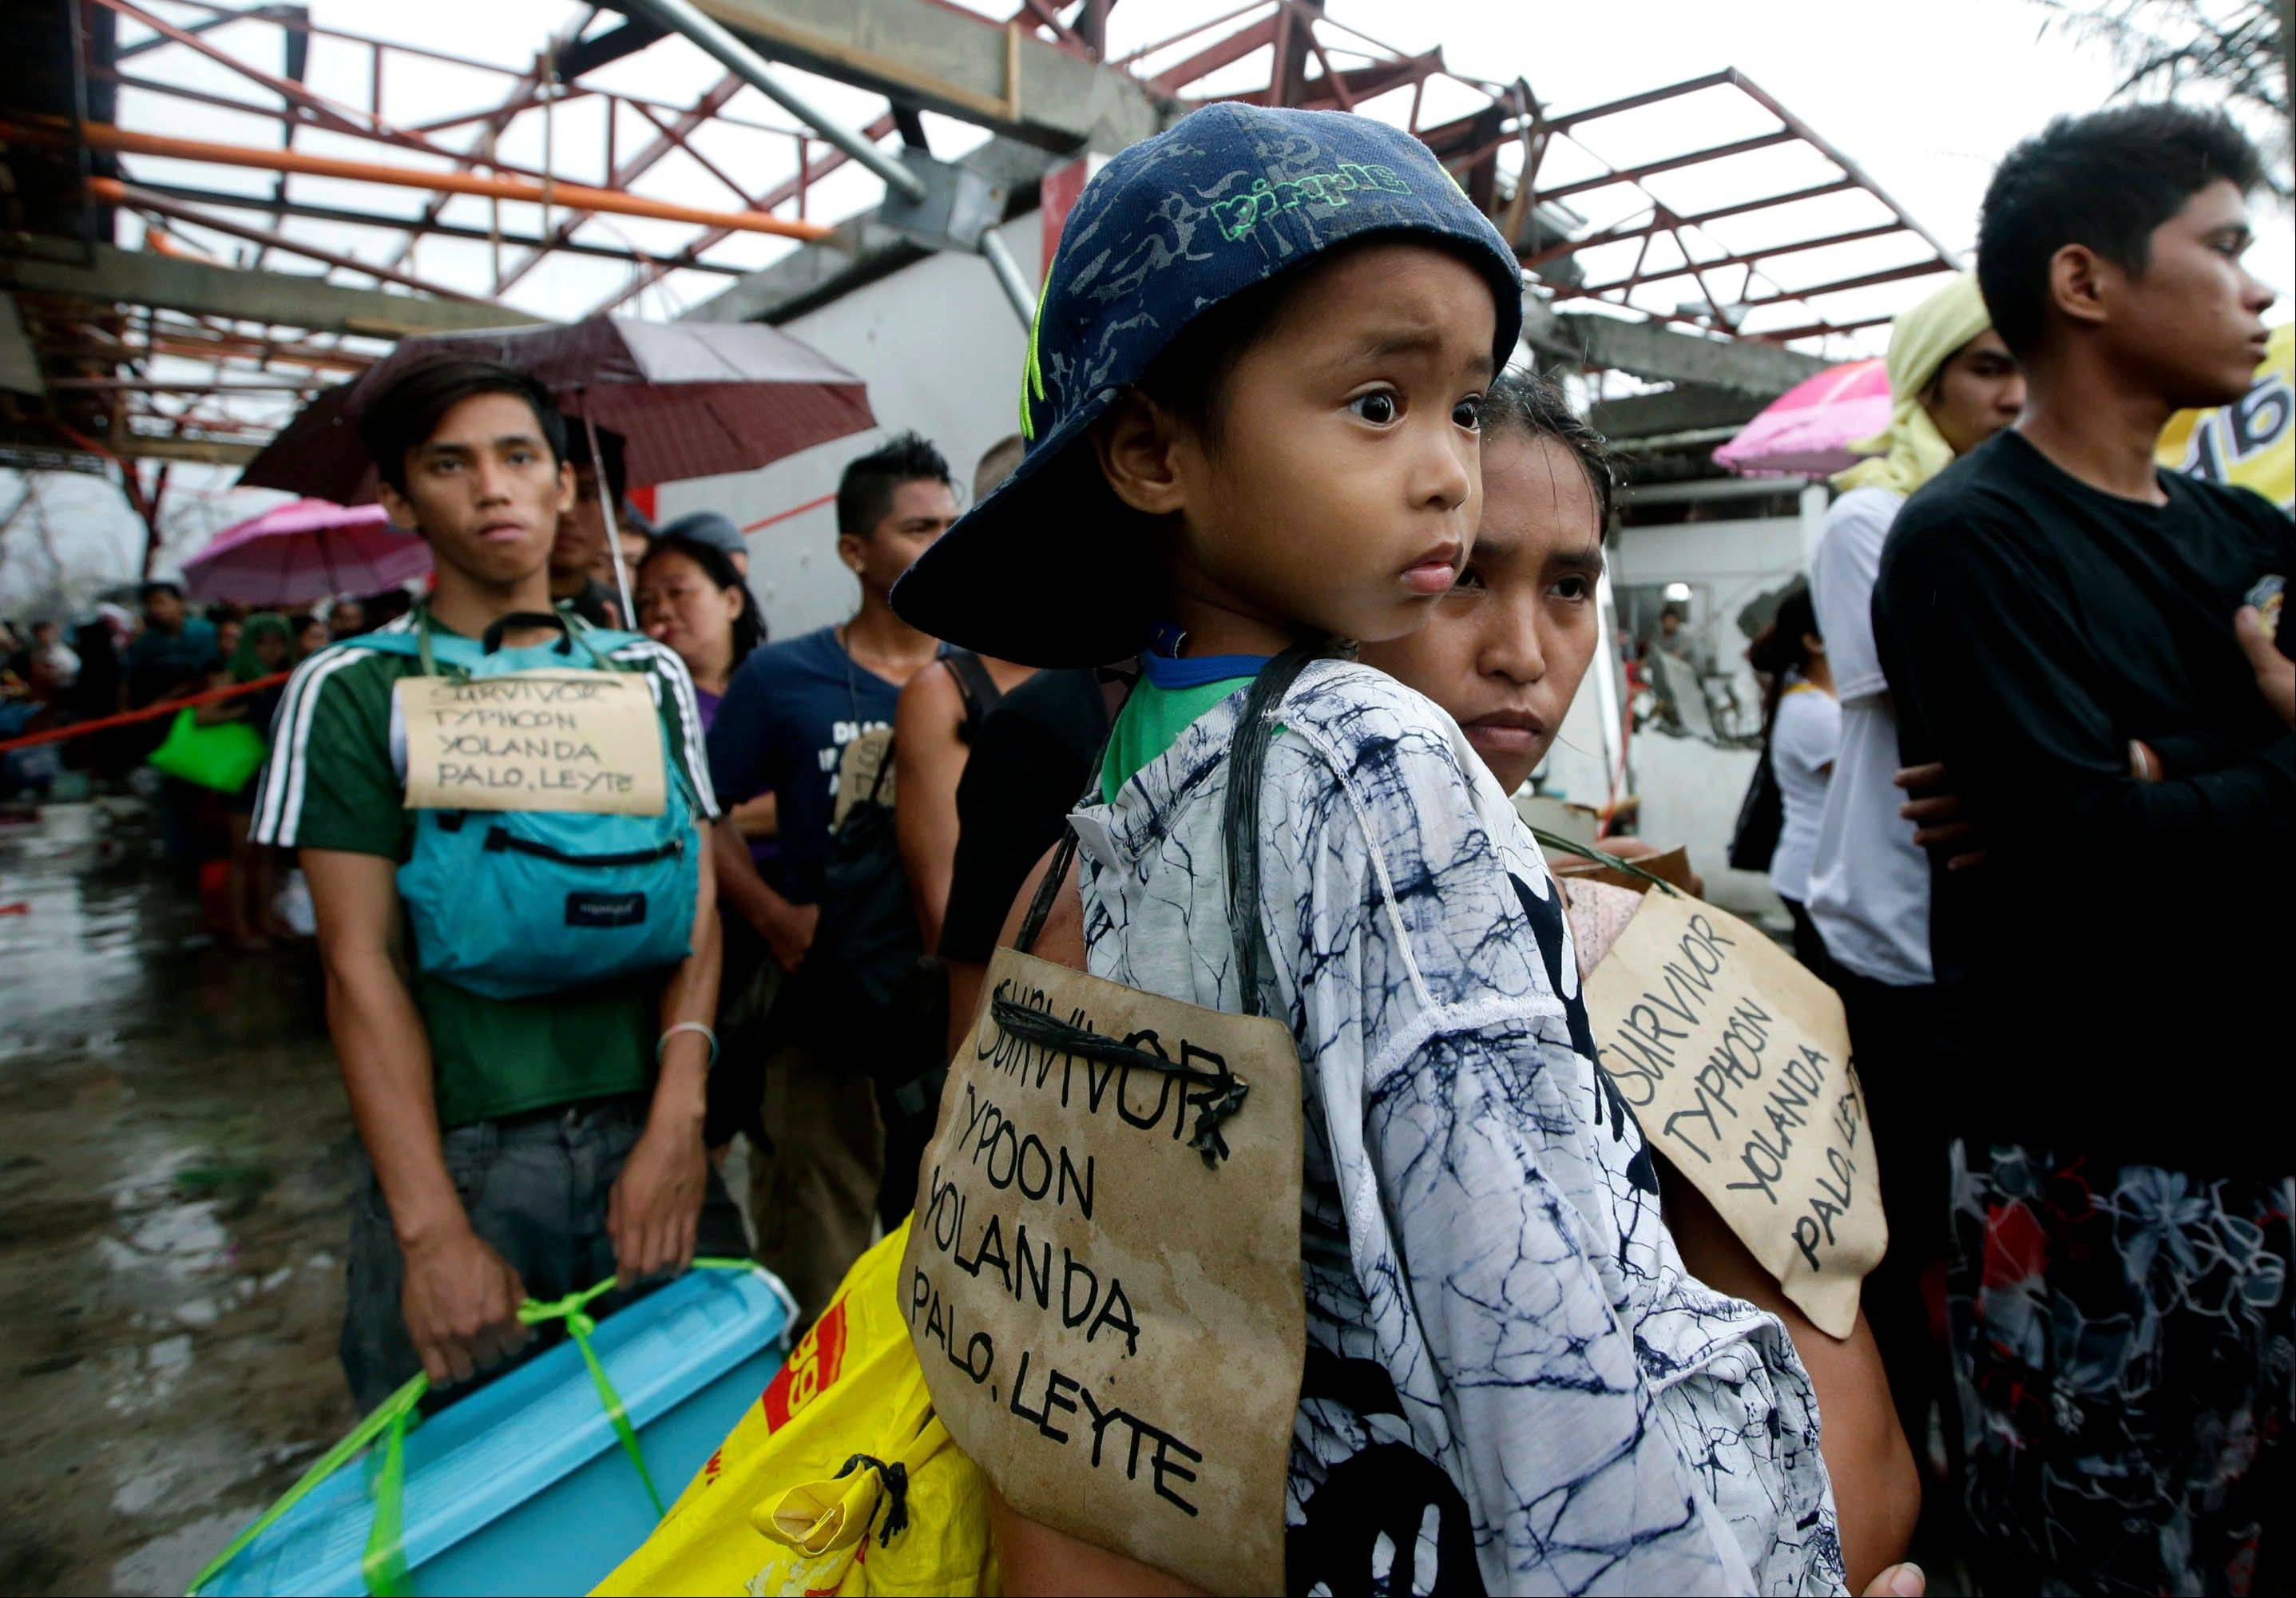 Typhoon survivors hang signs from their necks as they queue up in the hopes of boarding a C-130 military transport plane Tuesday in Tacloban, central Philippines. Thousands of typhoon survivors swarmed the airport on Tuesday seeking a flight out, but only a few hundred made it, leaving behind a shattered, rain-lashed city short of food and water and littered with countless bodies.